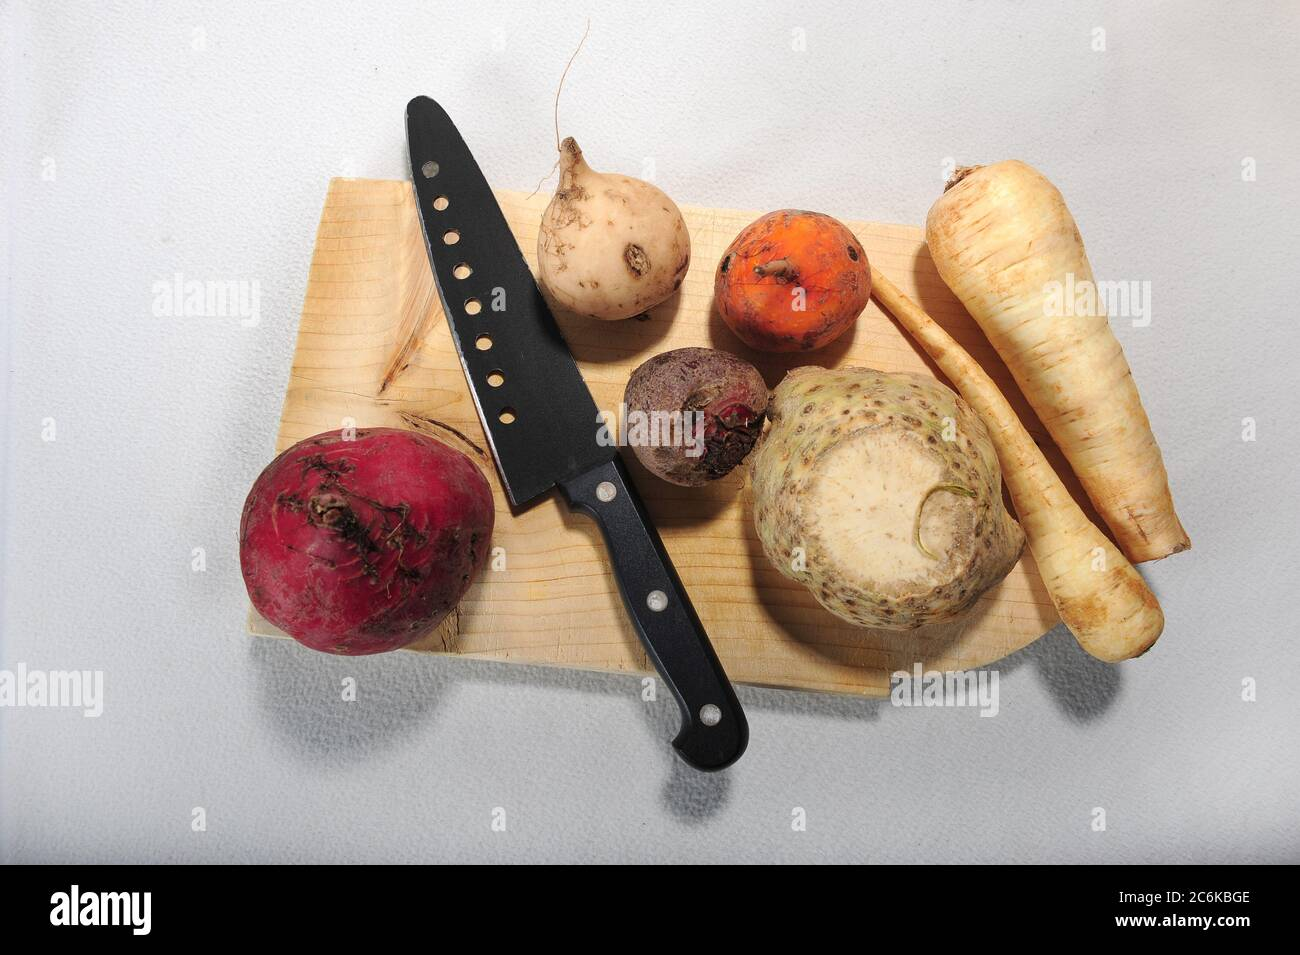 Different root vegetables on wooden cutting board along with knife. White background. High angle view. Stock Photo